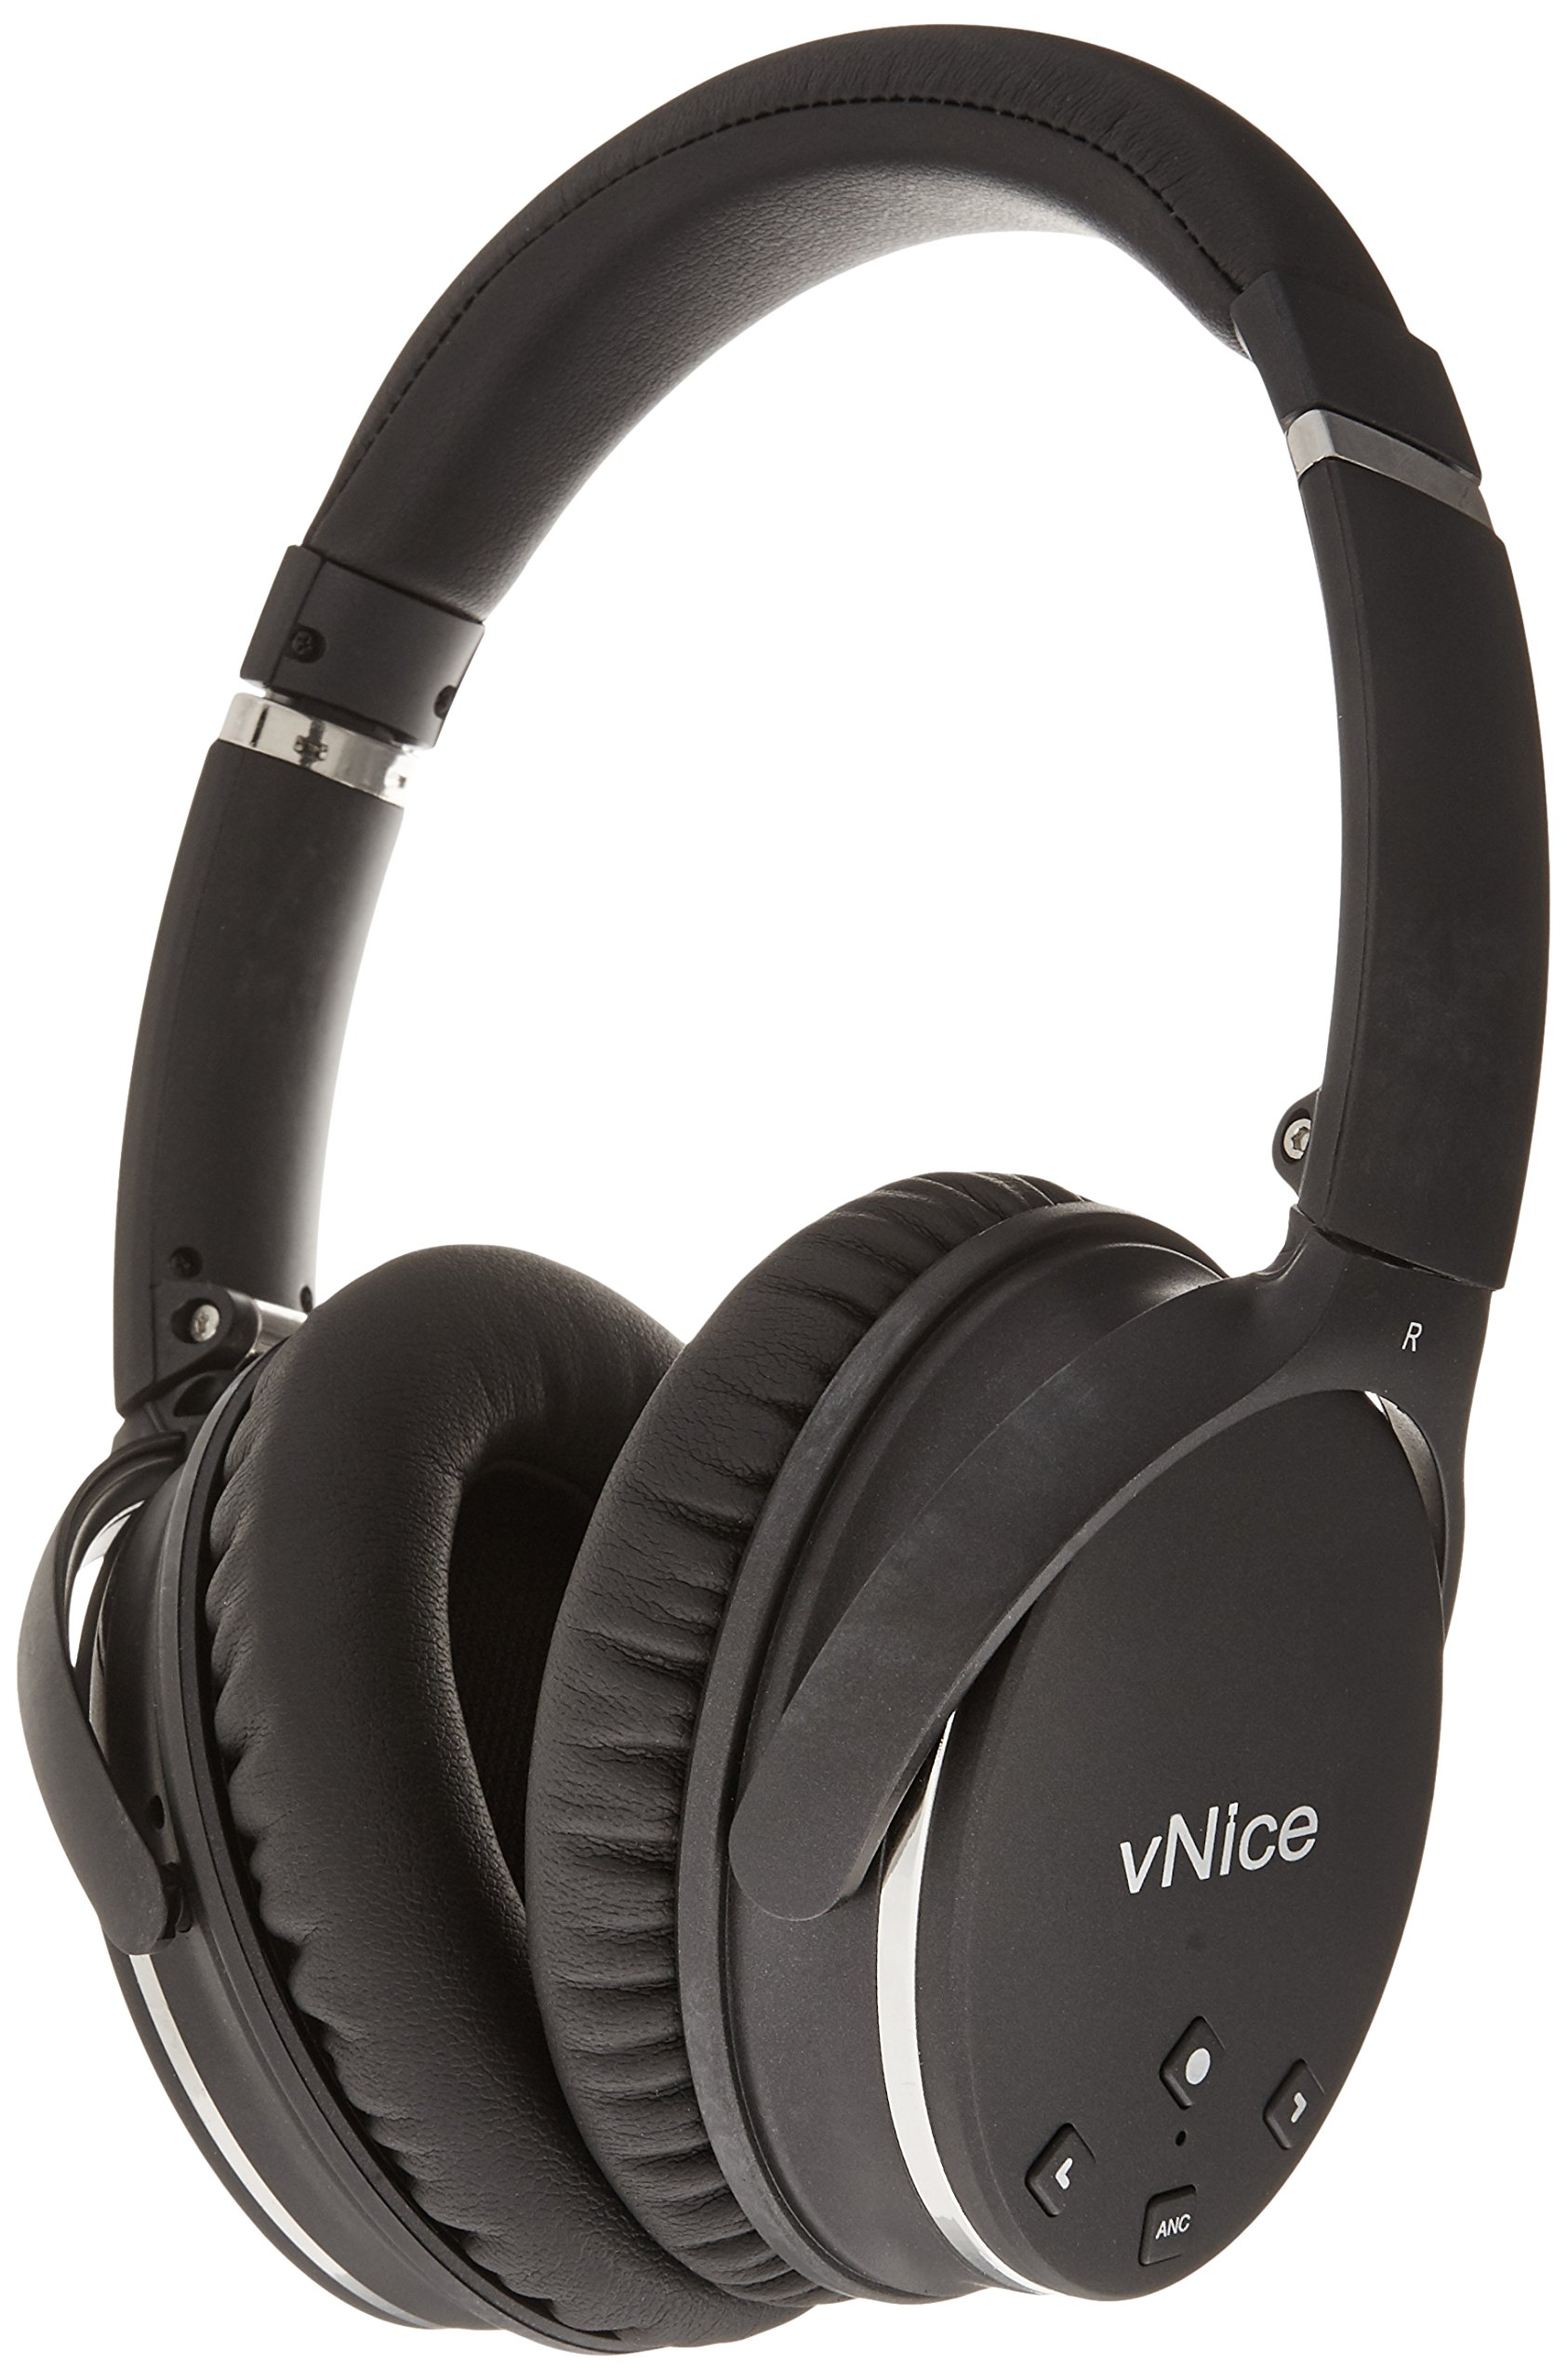 vNice Active Noise Cancelling Bluetooth Headphones with Microphone Wireless Headphones Over Ear Hi-Fi Deep Bass Comfortable Protein Earpads, 12 Hours Playtime for Travel Work TV Computer - Black